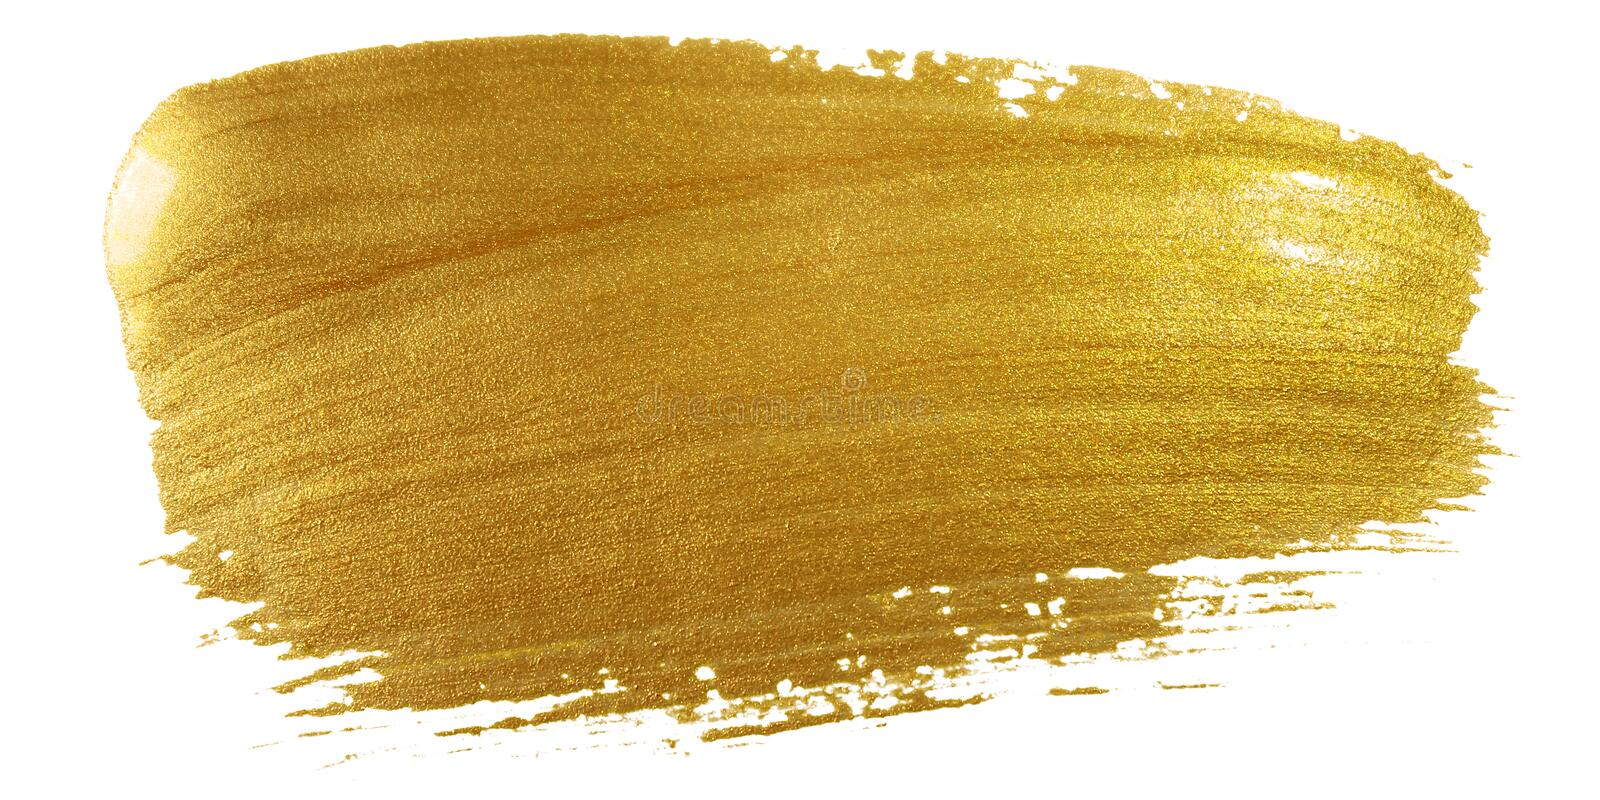 Gold color paint brush stroke. Big golden smear stain background on white backdrop. Abstract detailed gold glittering textured wet. Paint stroke for Christmas royalty free stock images